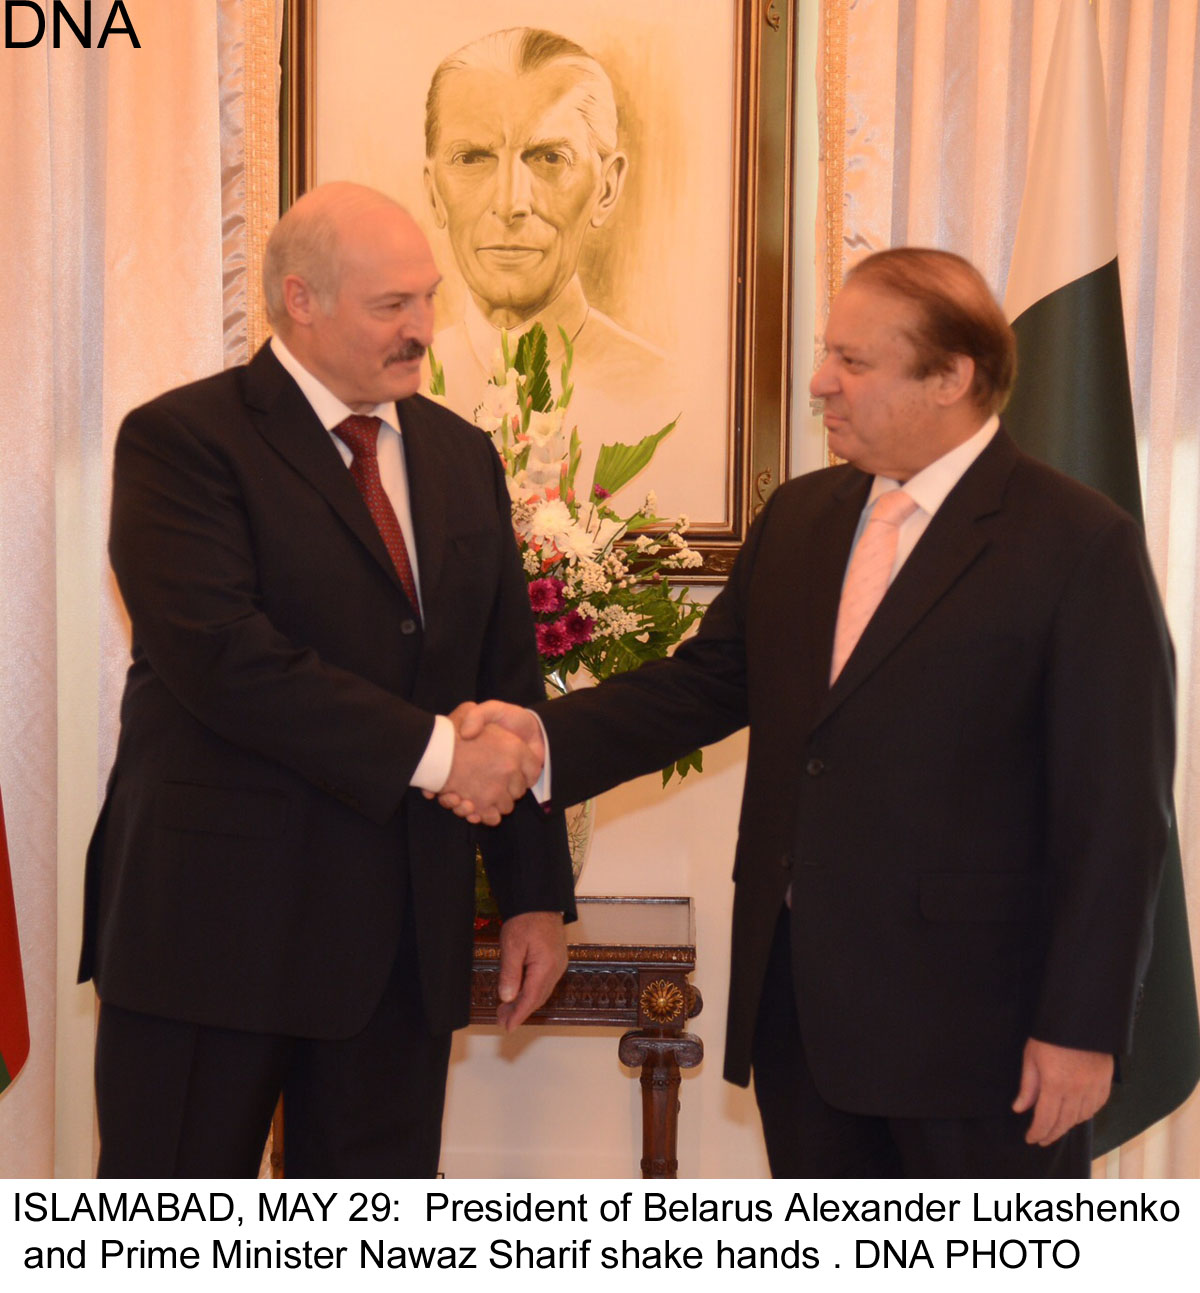 ISLAMABAD, MAY 29:  President of Belarus Alexander Lukashenko  and Prime Minister Nawaz Sharif shake hands . DNA PHOTO